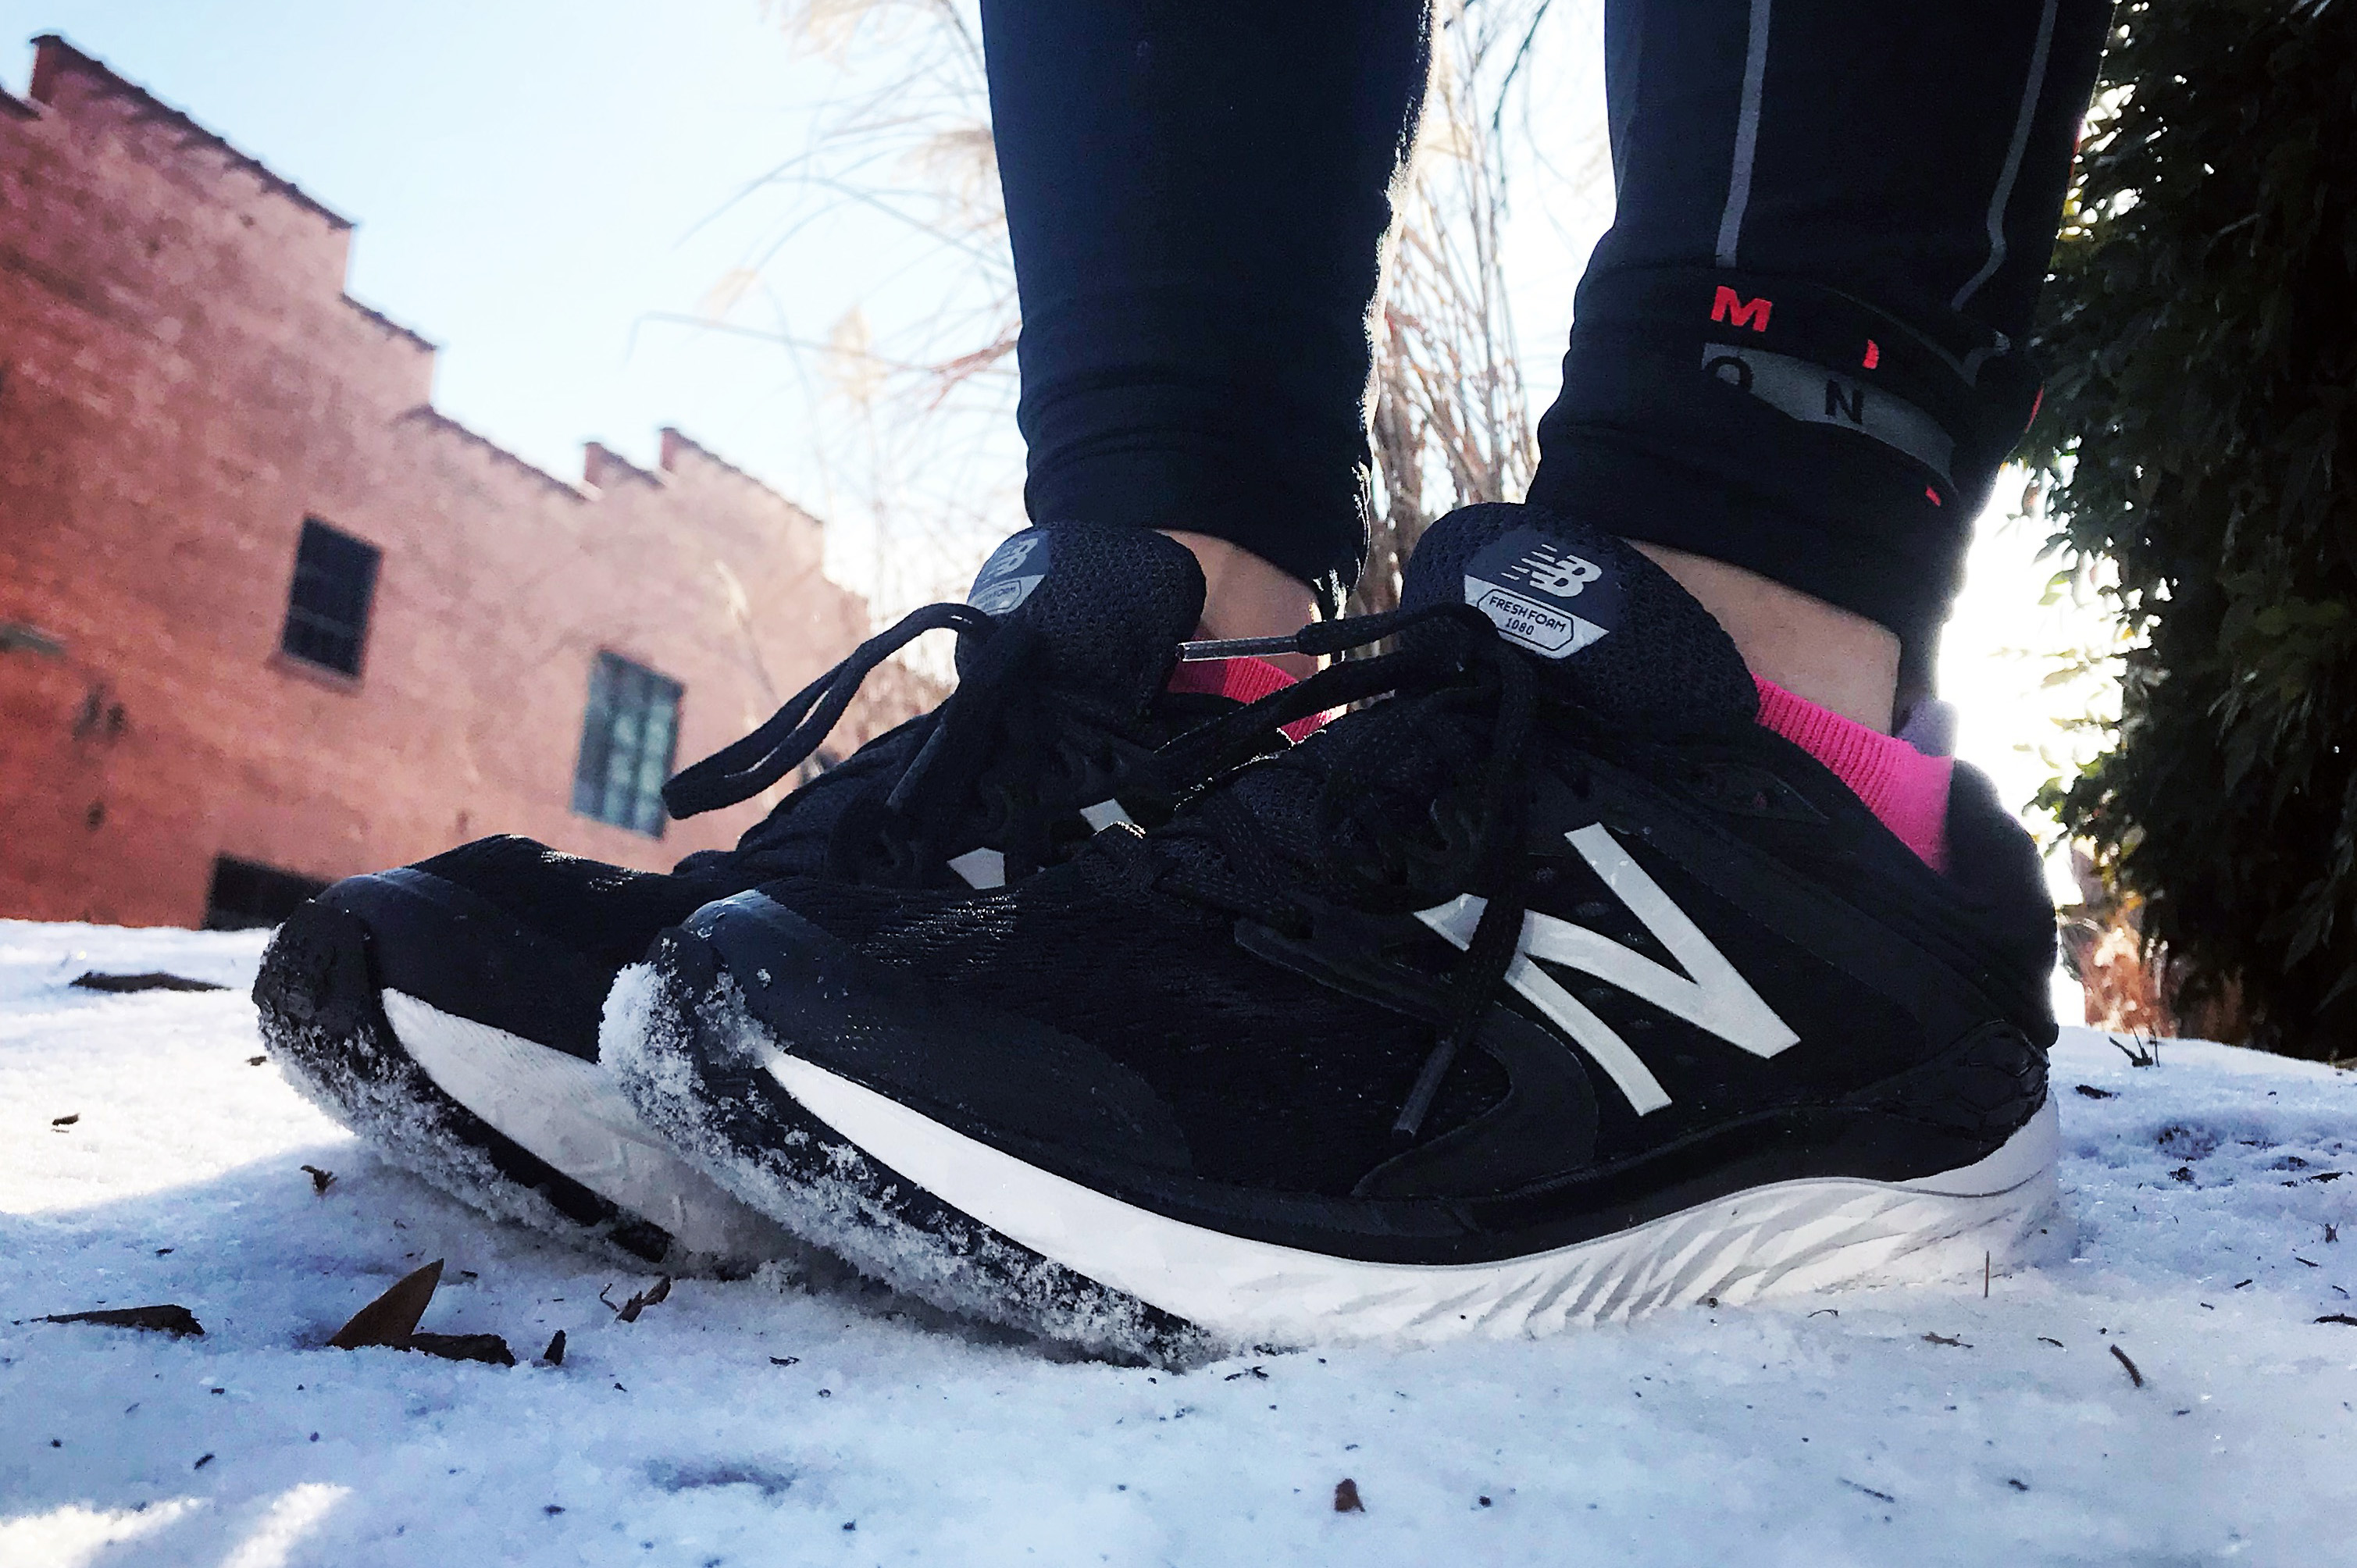 New Balance 1080 v8 Performance Review » Believe in the Run